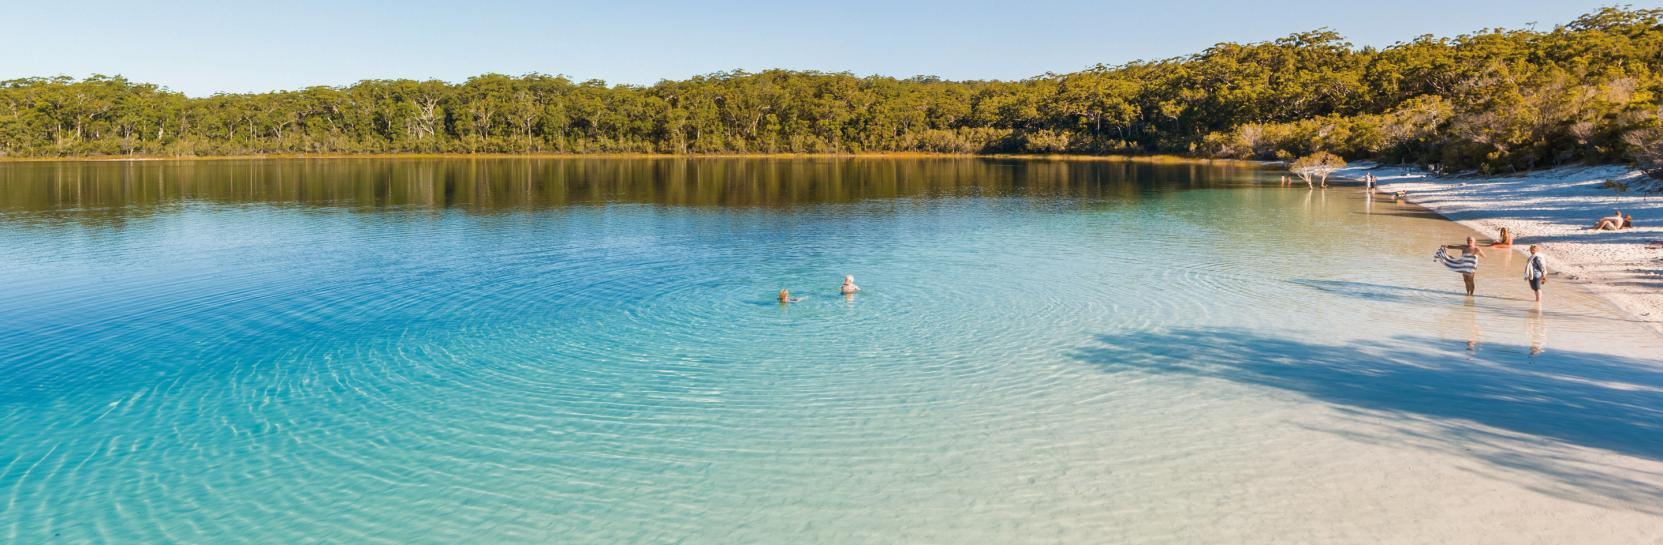 Fraser Island Beach is one of the deadliest beaches in the world with a plethora of dangerous creatures